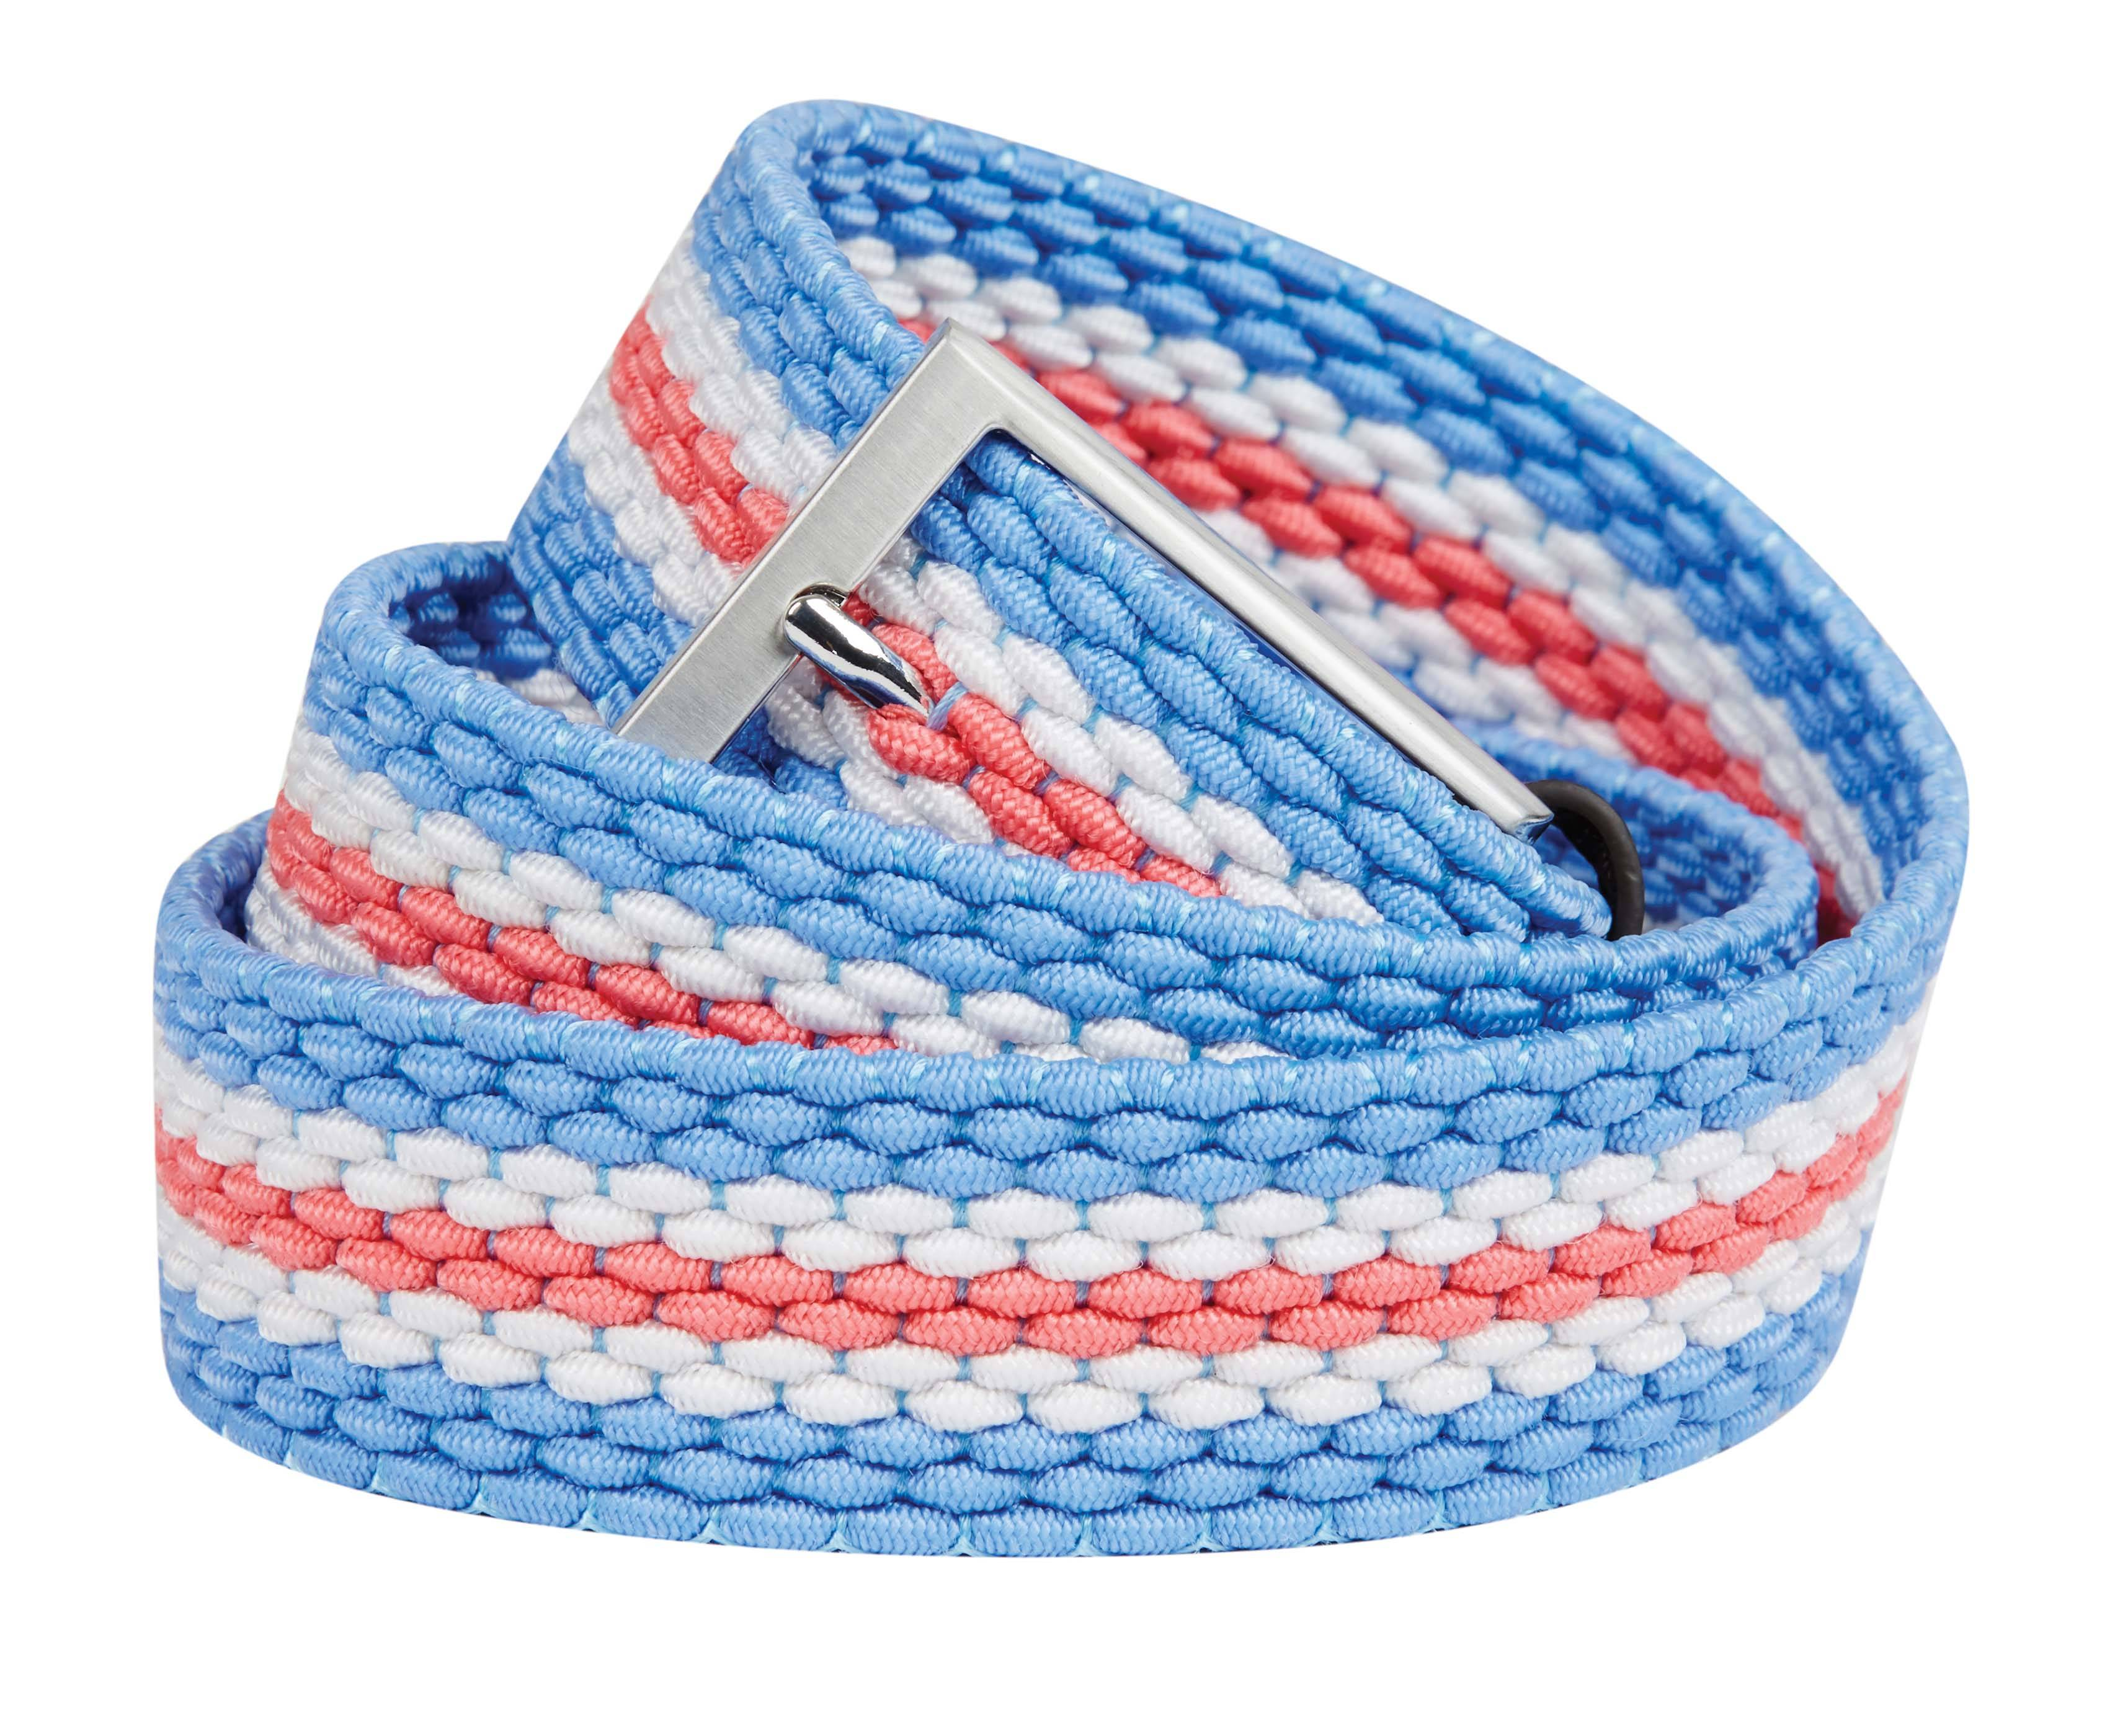 Dublin Mayfair Cotton Wax Braided Belt with Leather Look Detailing